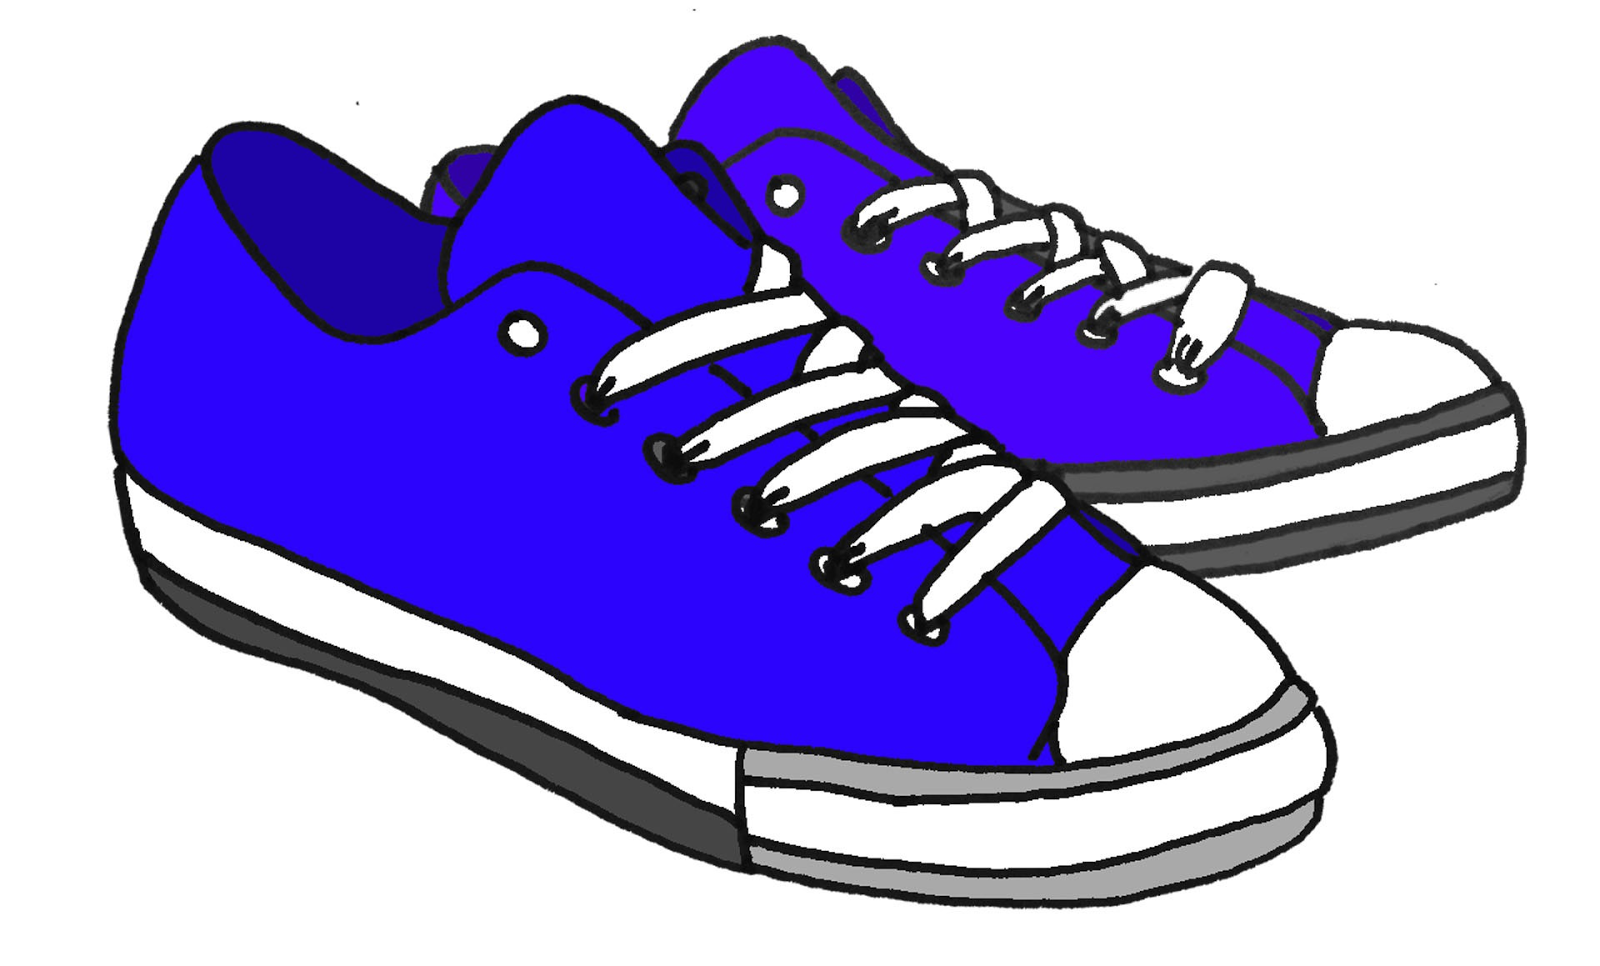 Converse Shoe Walking Clipart Kid Cliparting Com Blue Sneakers Converse Shoe Shoes Clipart